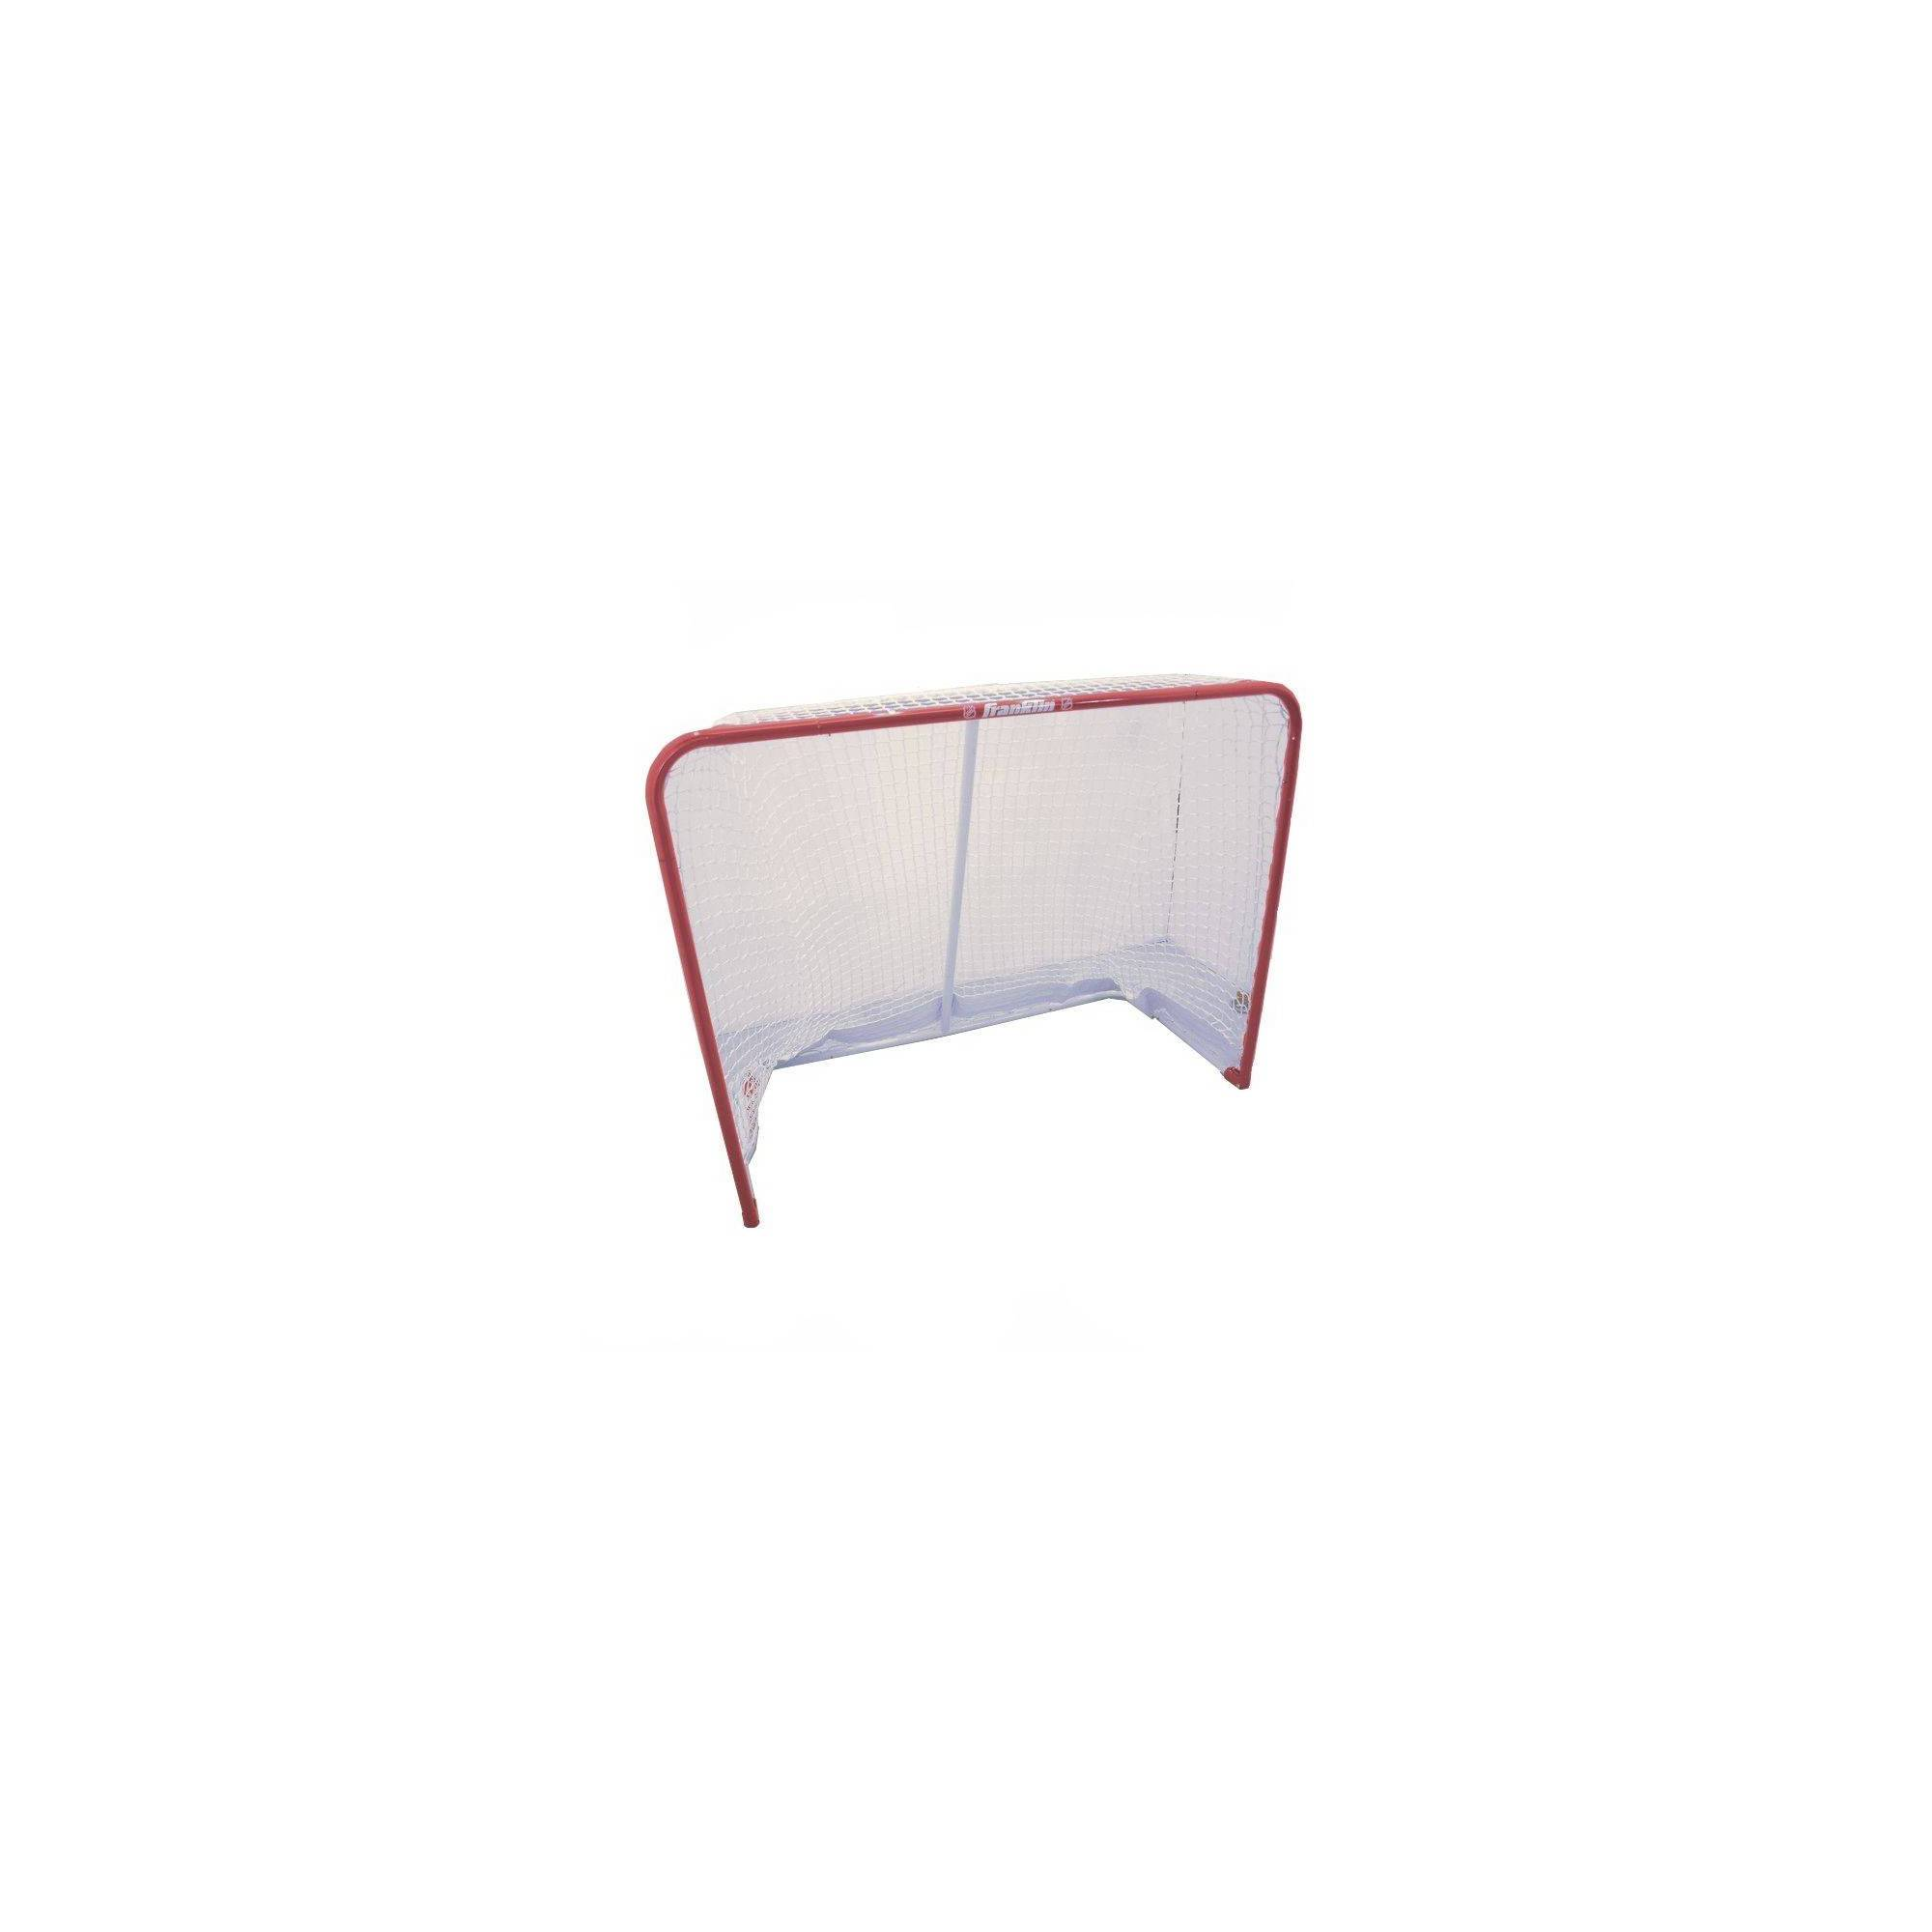 Bramka Street Hockey NHL 54'' FRANKLIN 137x112x66cm,producent: SPARTAN SPORT, photo: 1